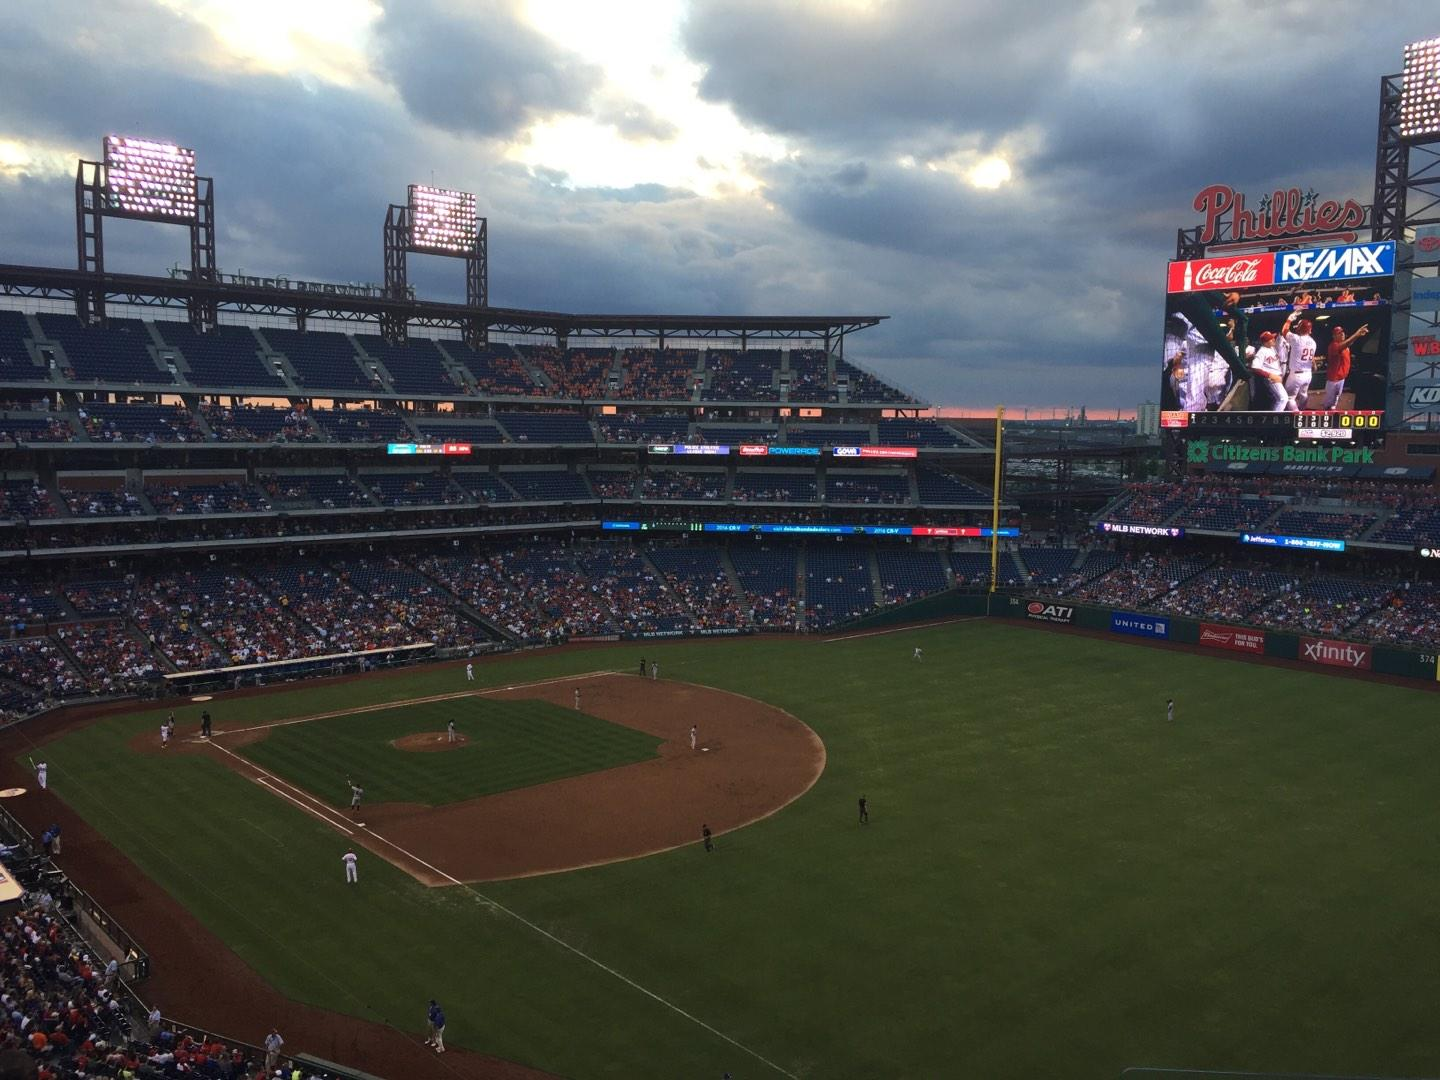 Citizens Bank Park Section 309 Row 6 Seat 3